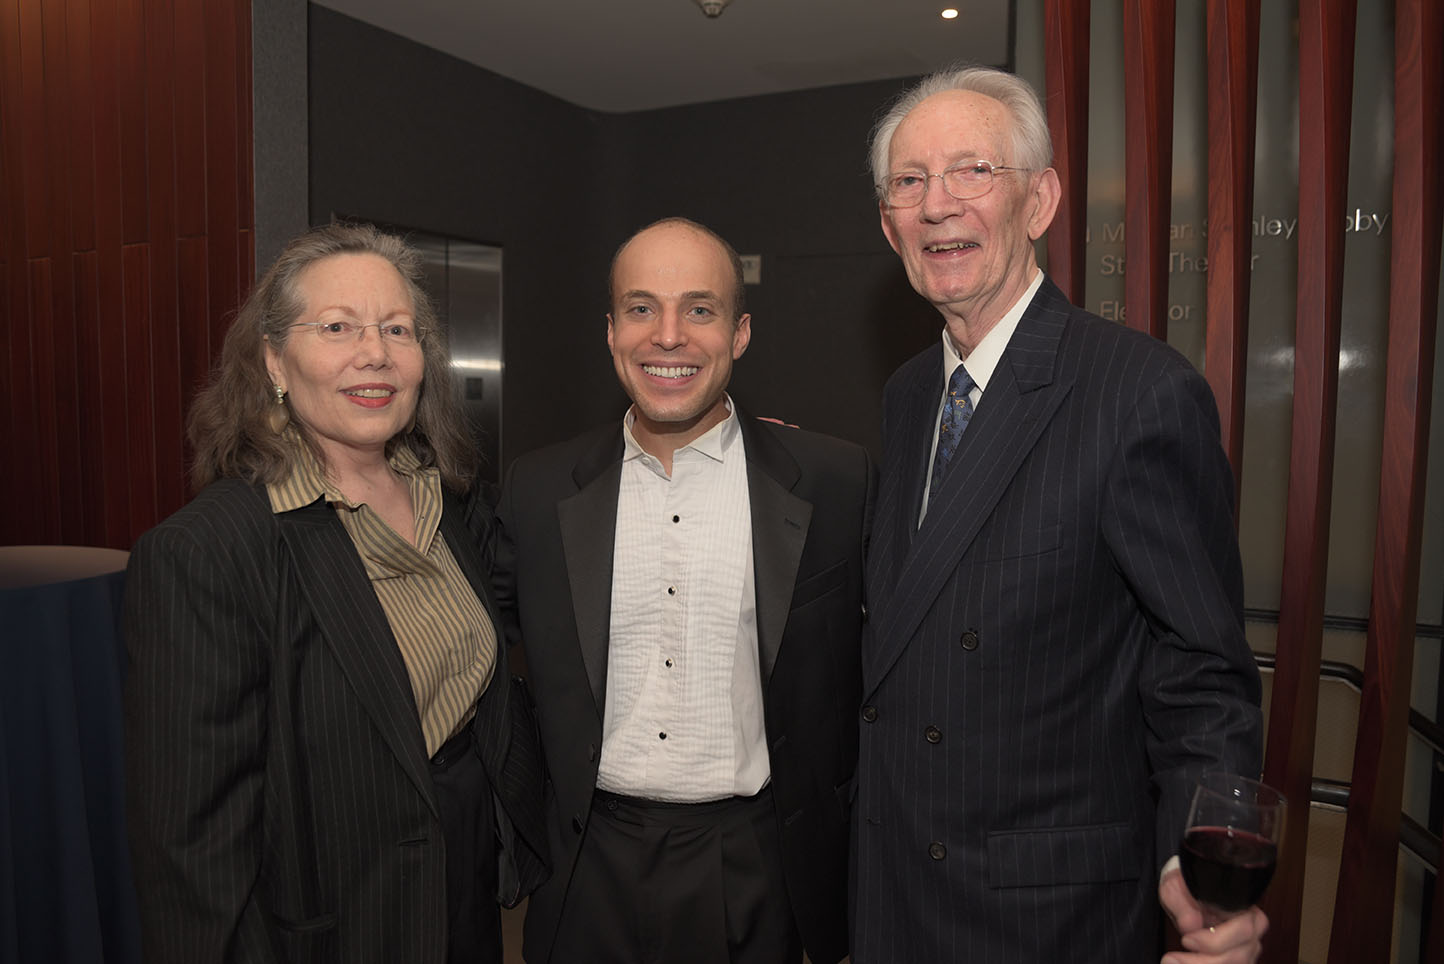 Nell Dillon-Ermers, Orion Weiss, Global Council member Howard Dillon